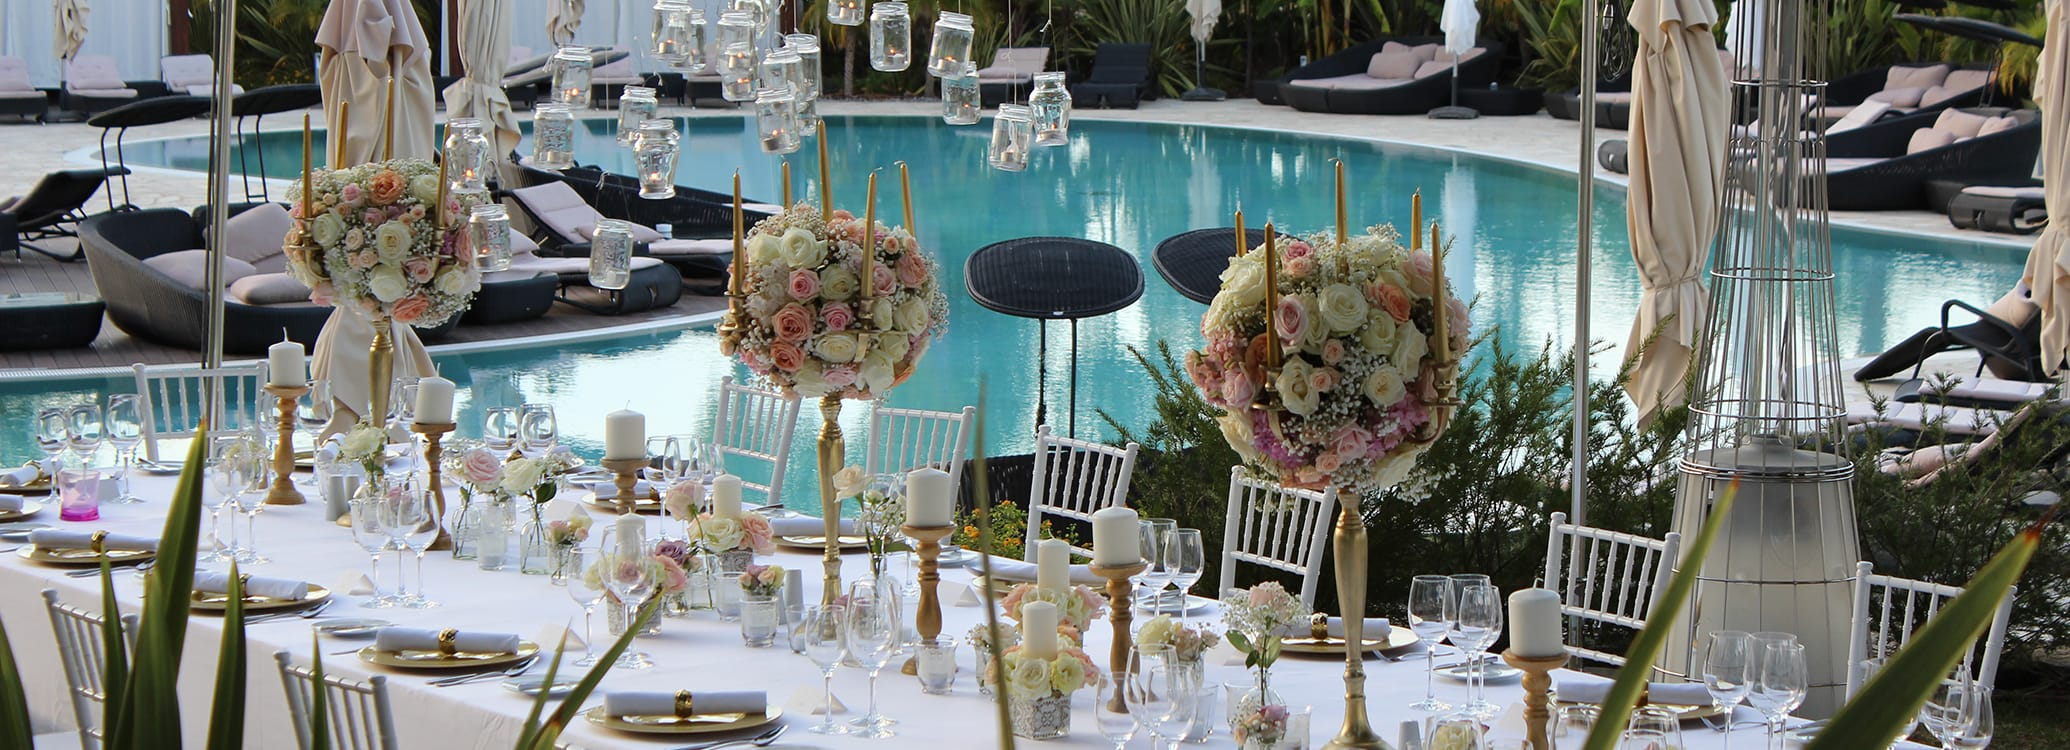 wedding chair hire algarve hammock and stand set meetings events at conrad weddings